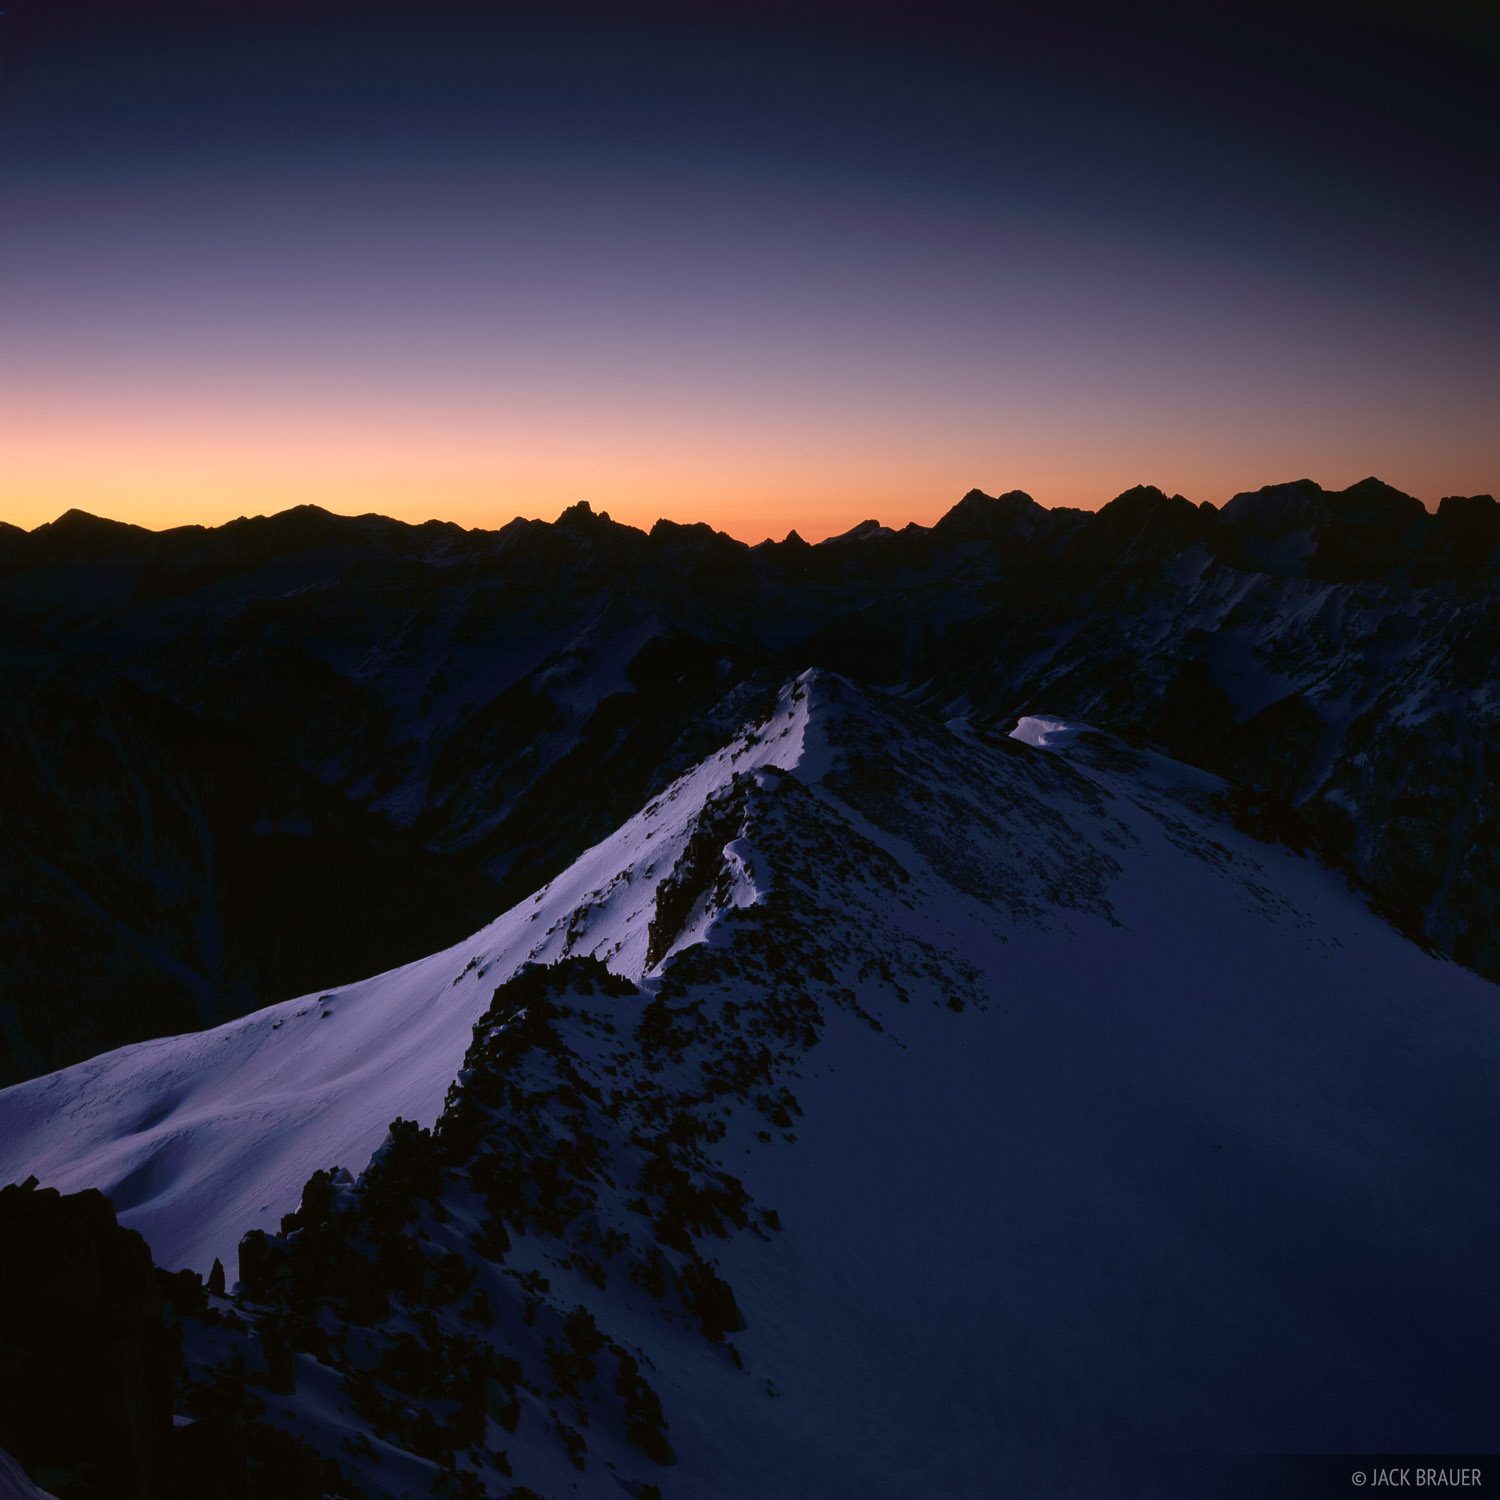 Needles Dawn Silhouette, San Juan Mountains, Colorado, photo